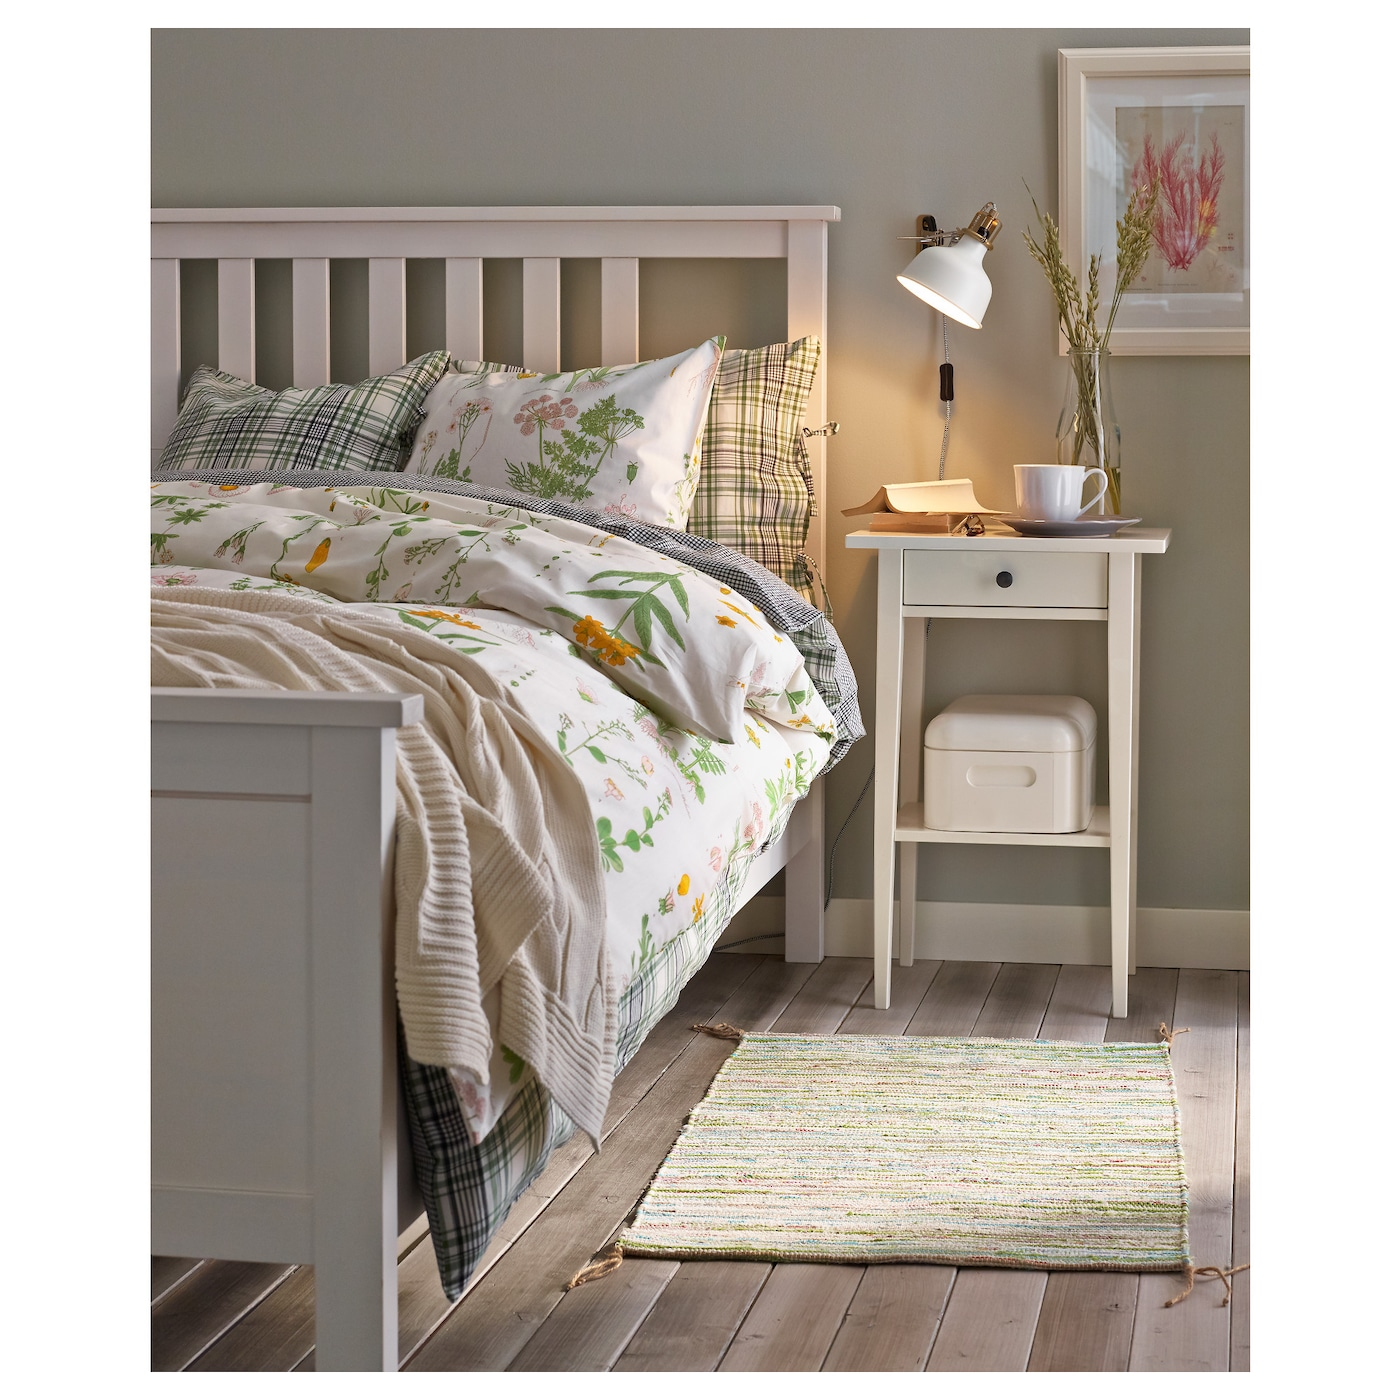 IKEA HEMNES Bed Frame Made Of Solid Wood, Which Is A Hardwearing And Warm  Natural